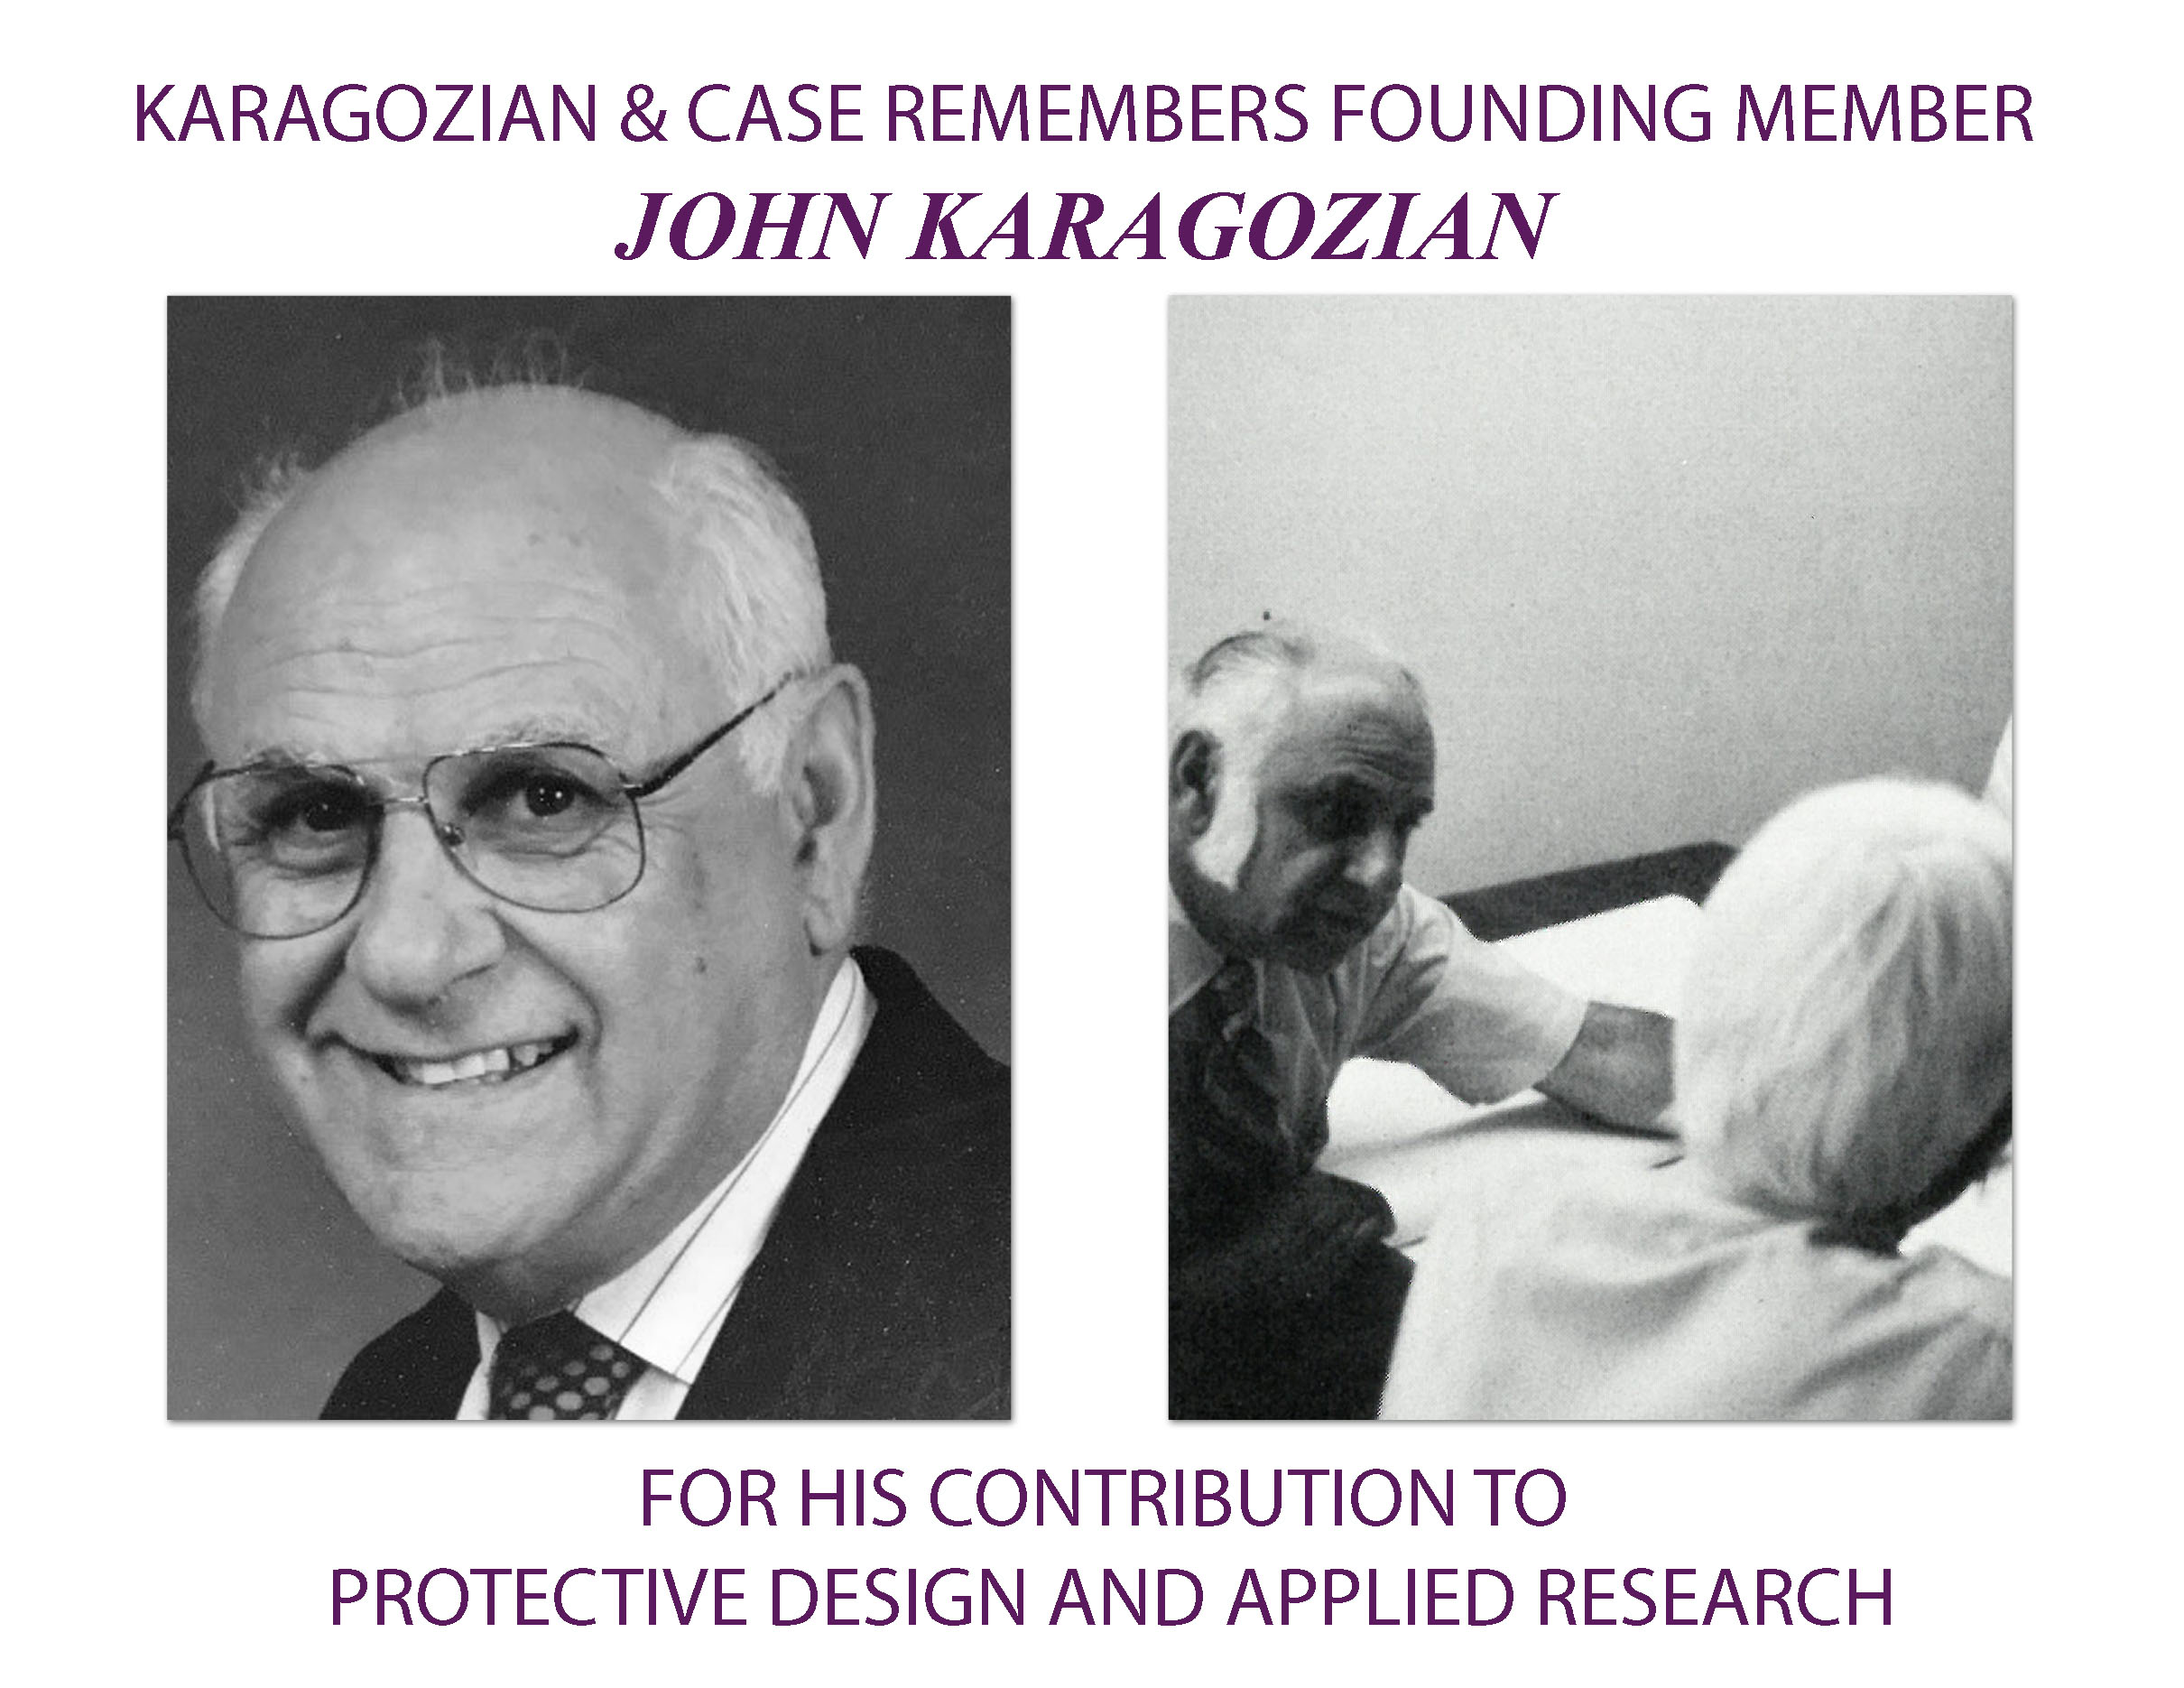 Remembering John Karagozian